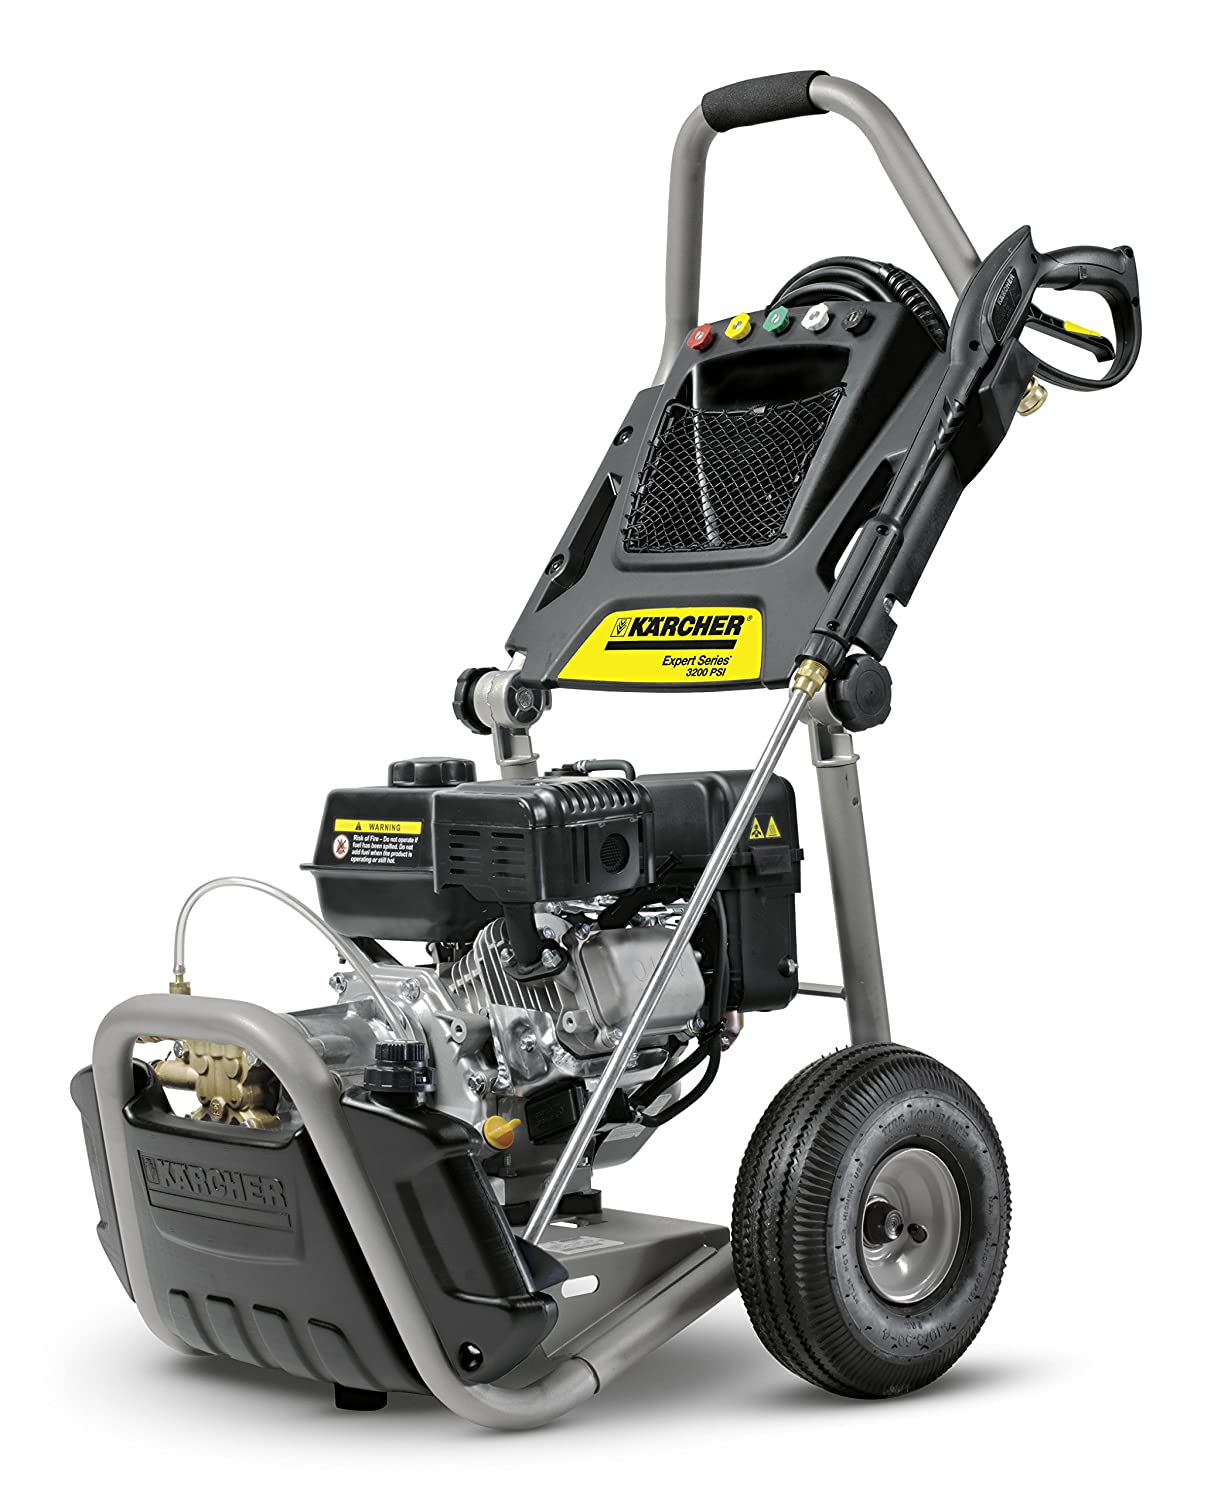 Is A Power Washer Ok To Use On Cars